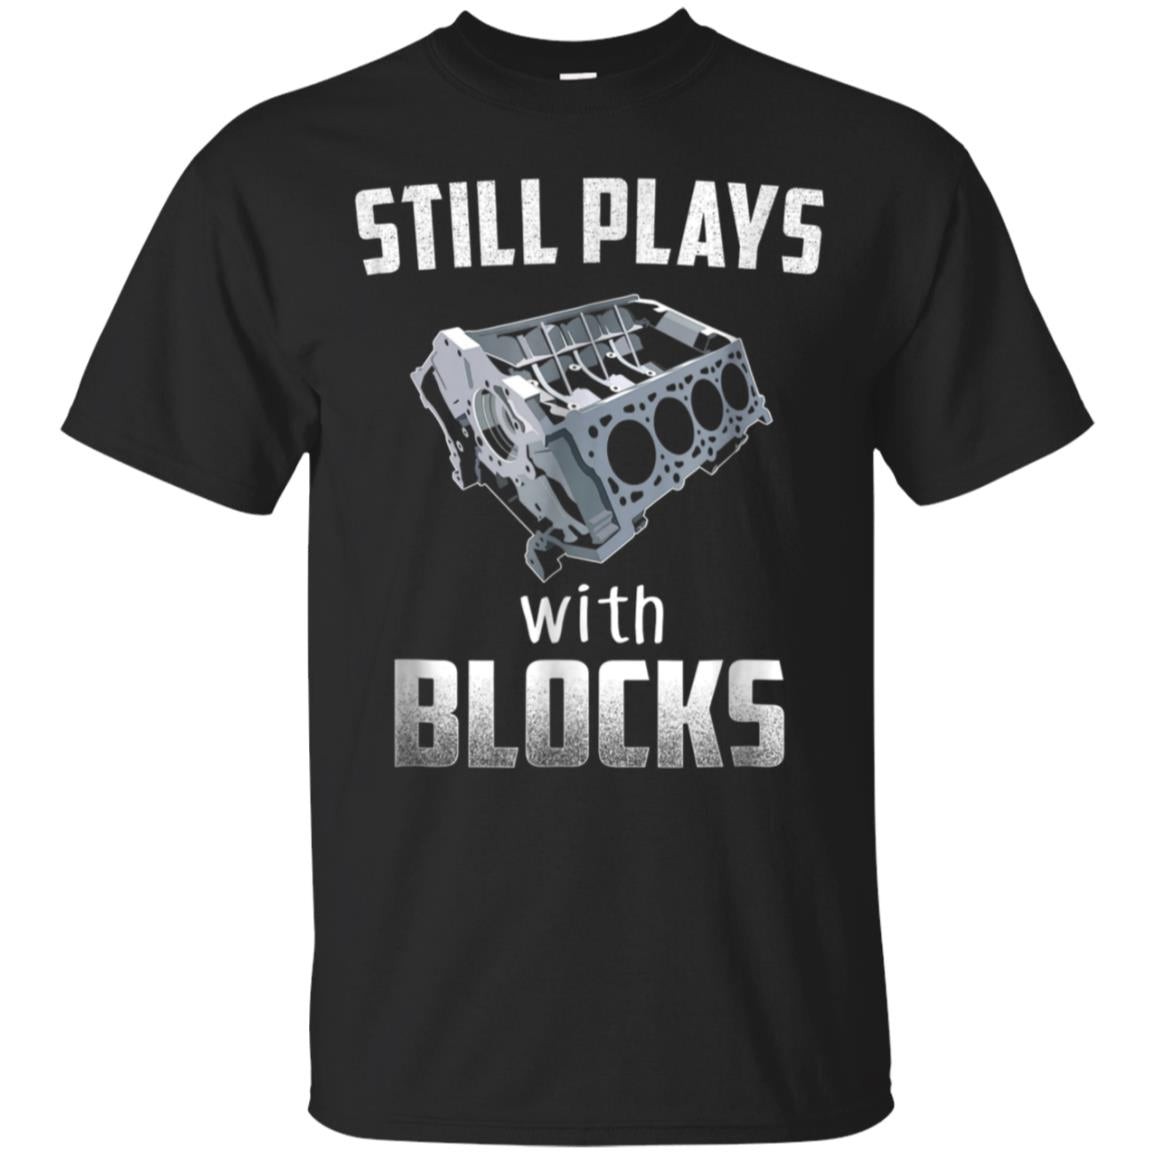 Still Plays With Blocks - Cylinder Block T-Shirt 99promocode